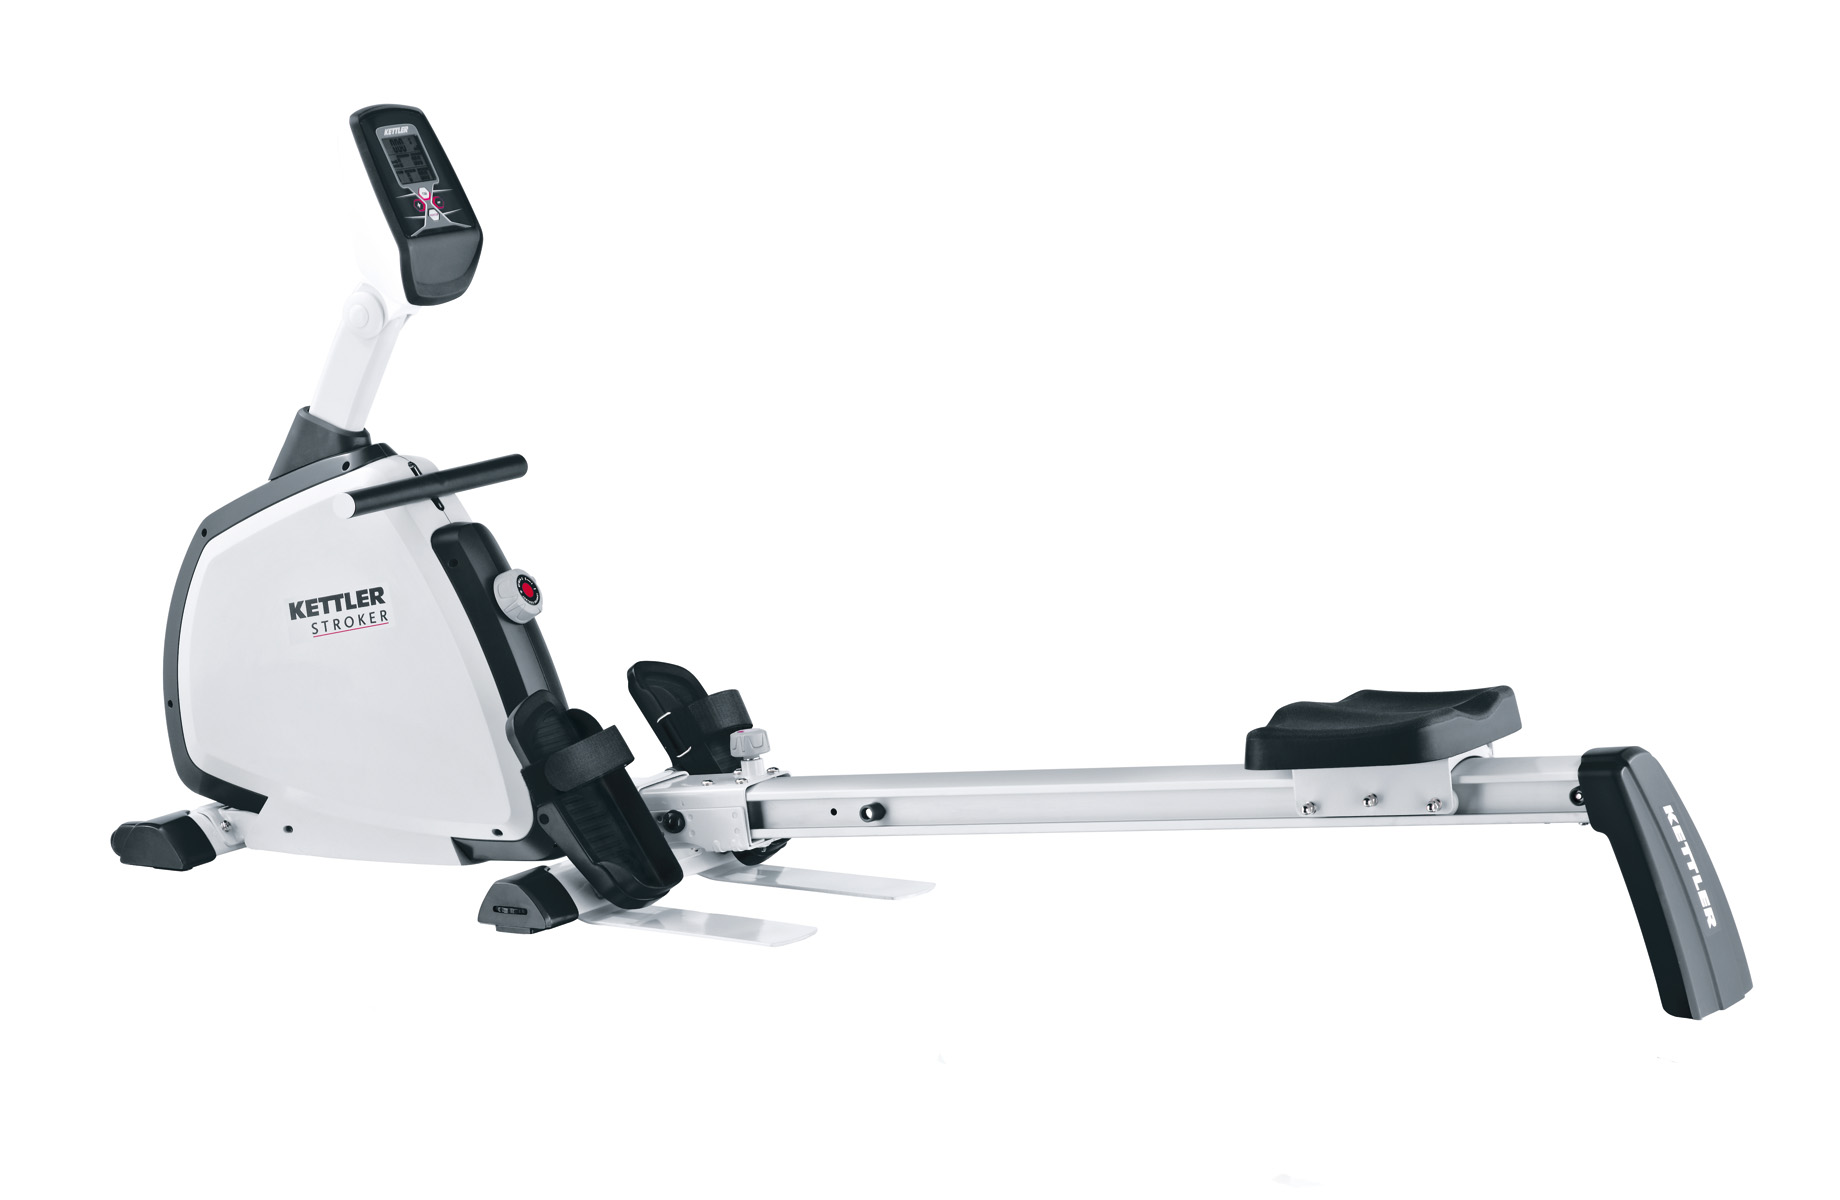 Kettler® KETTLER Fitness Stroker Rowing Machine (7982-500) at Sears.com